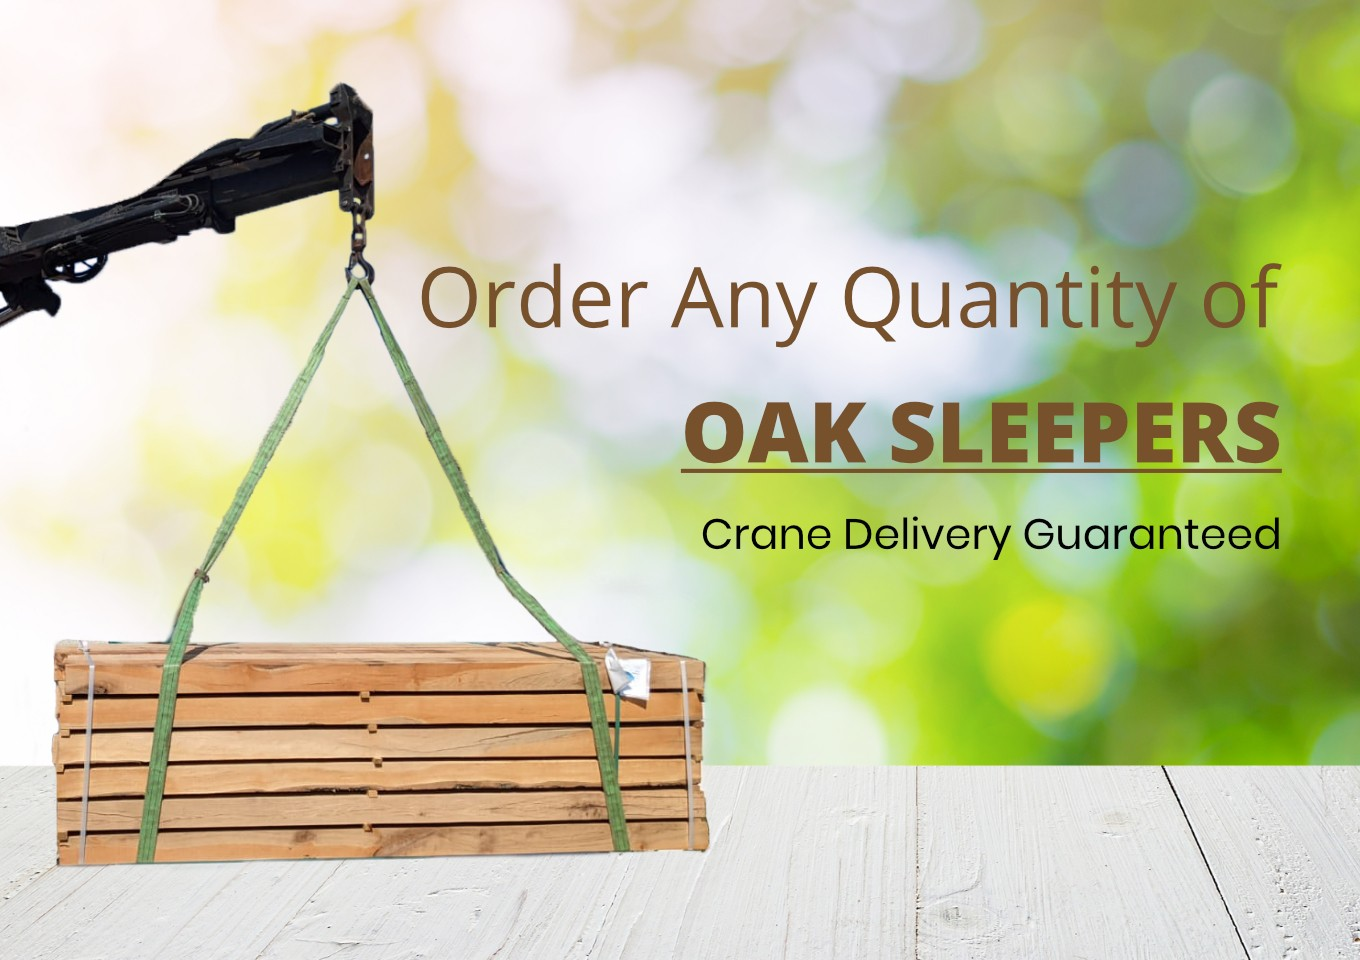 Crane Delivery Guaranteed for Any Quantity of Oak Sleepers